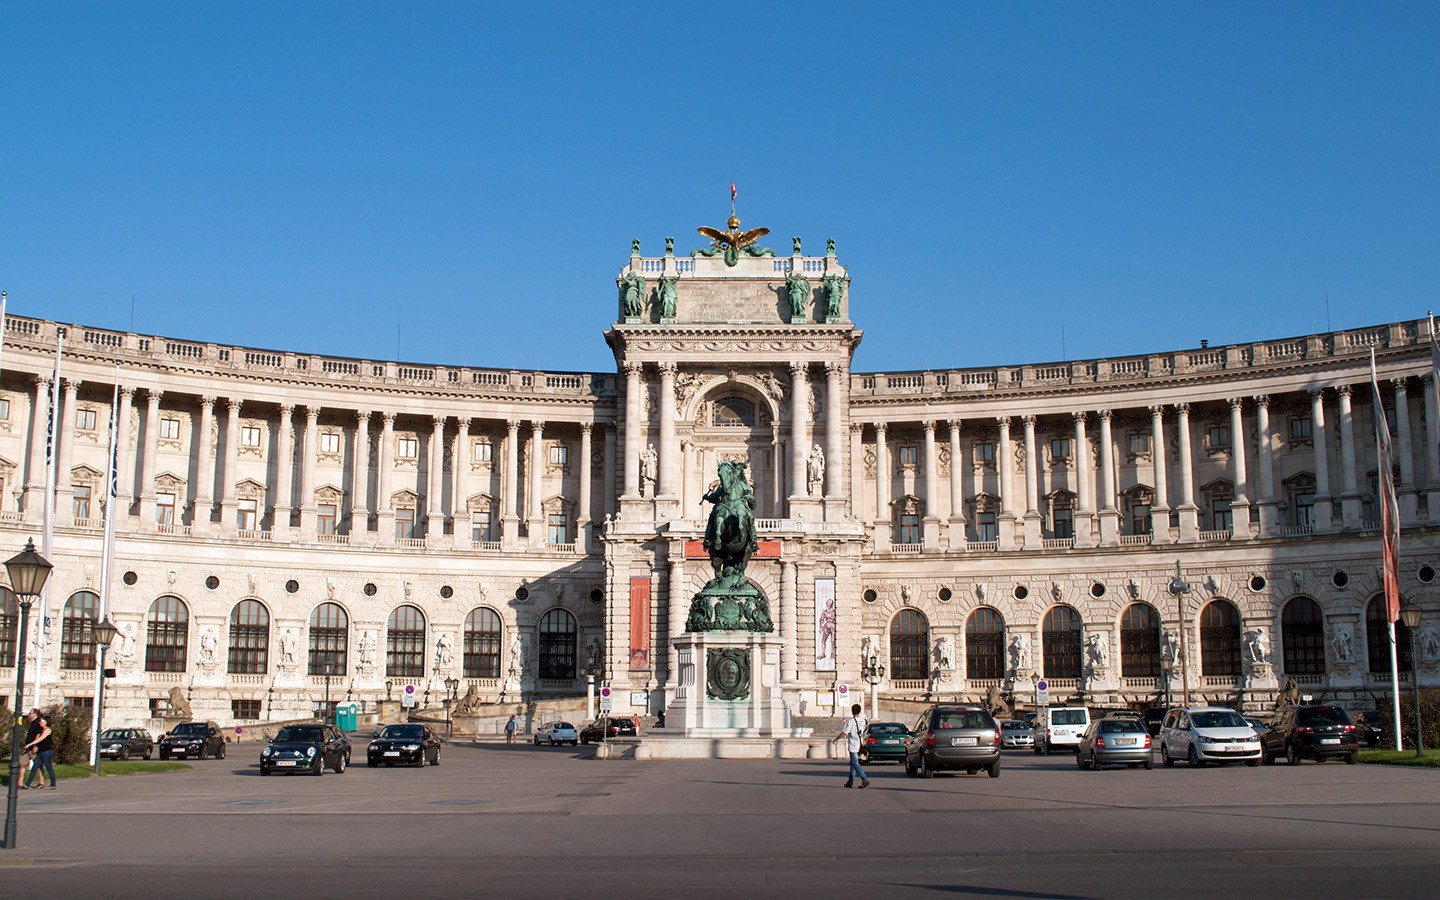 Hofburg Palace buildings in Vienna